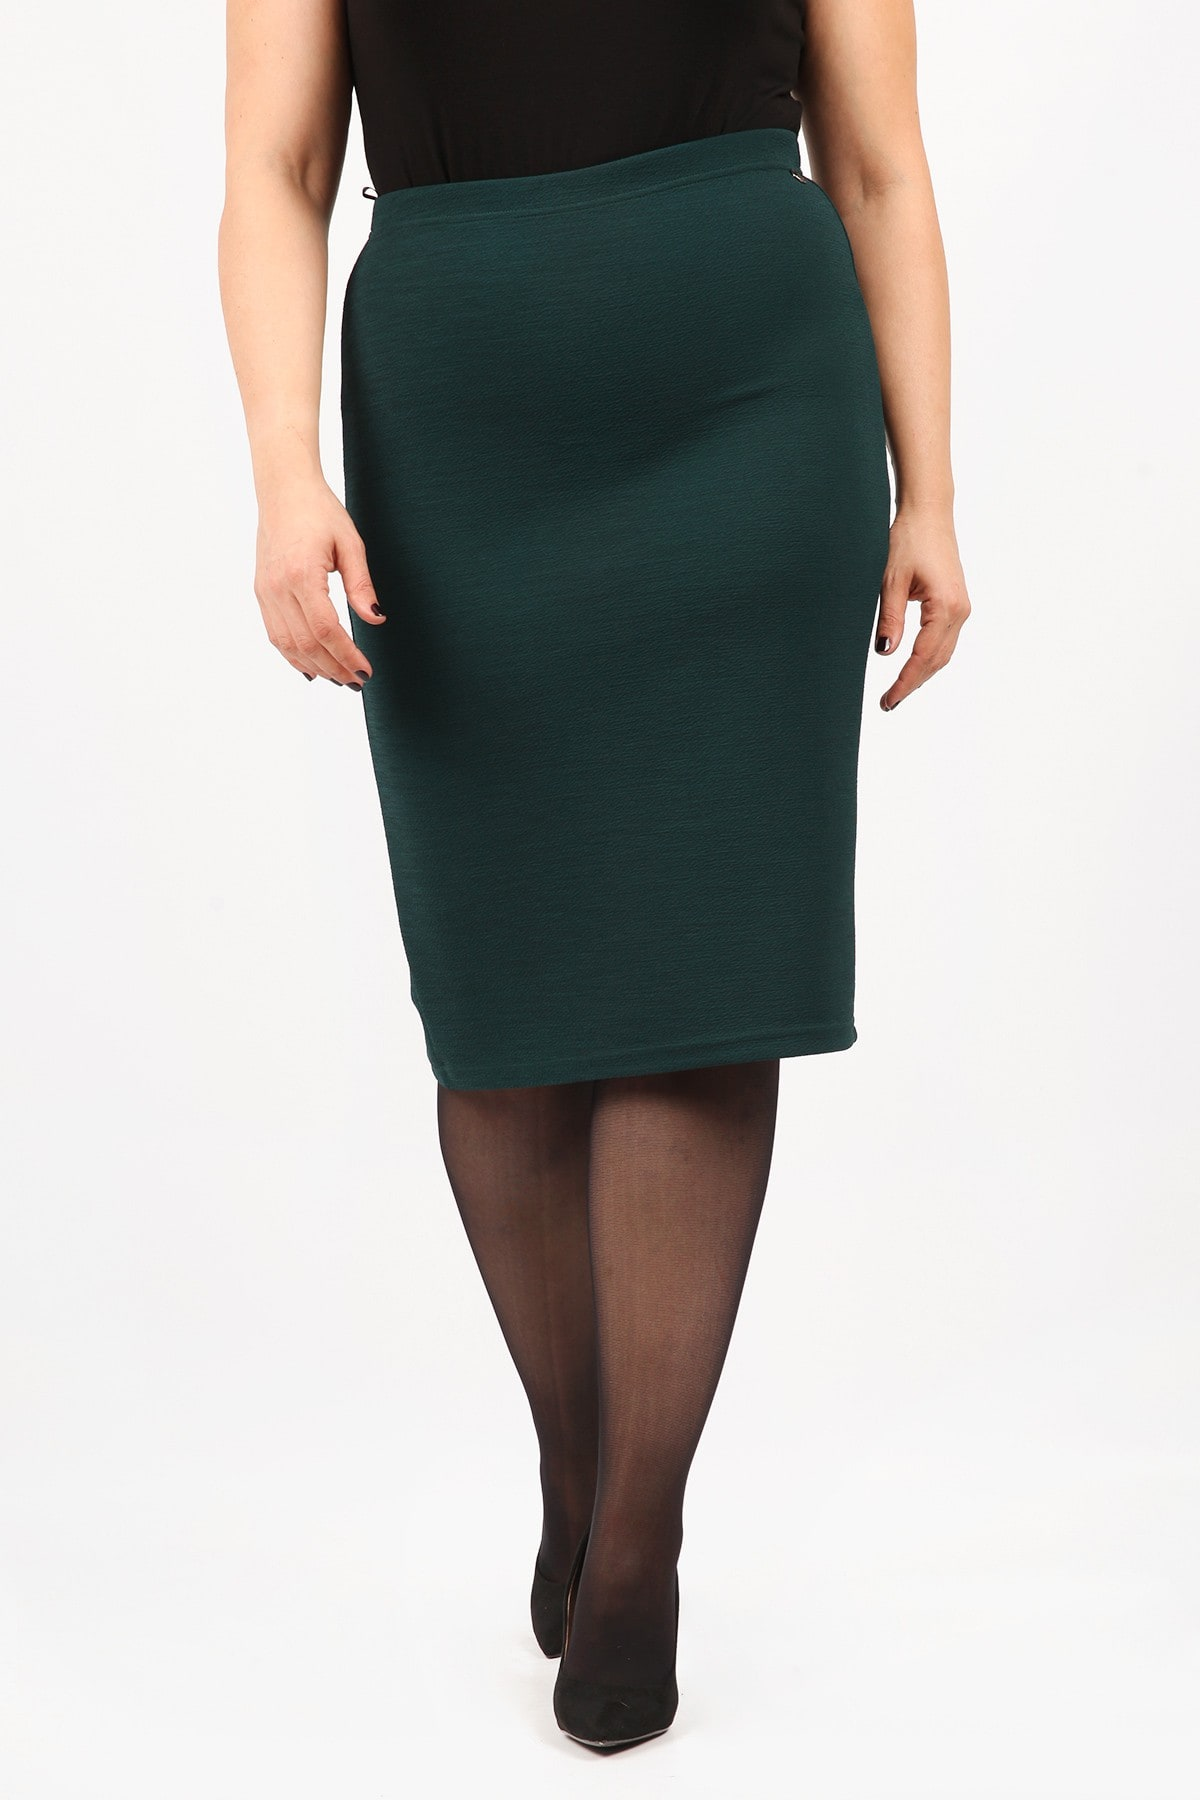 Jacquard elastic pencil skirt